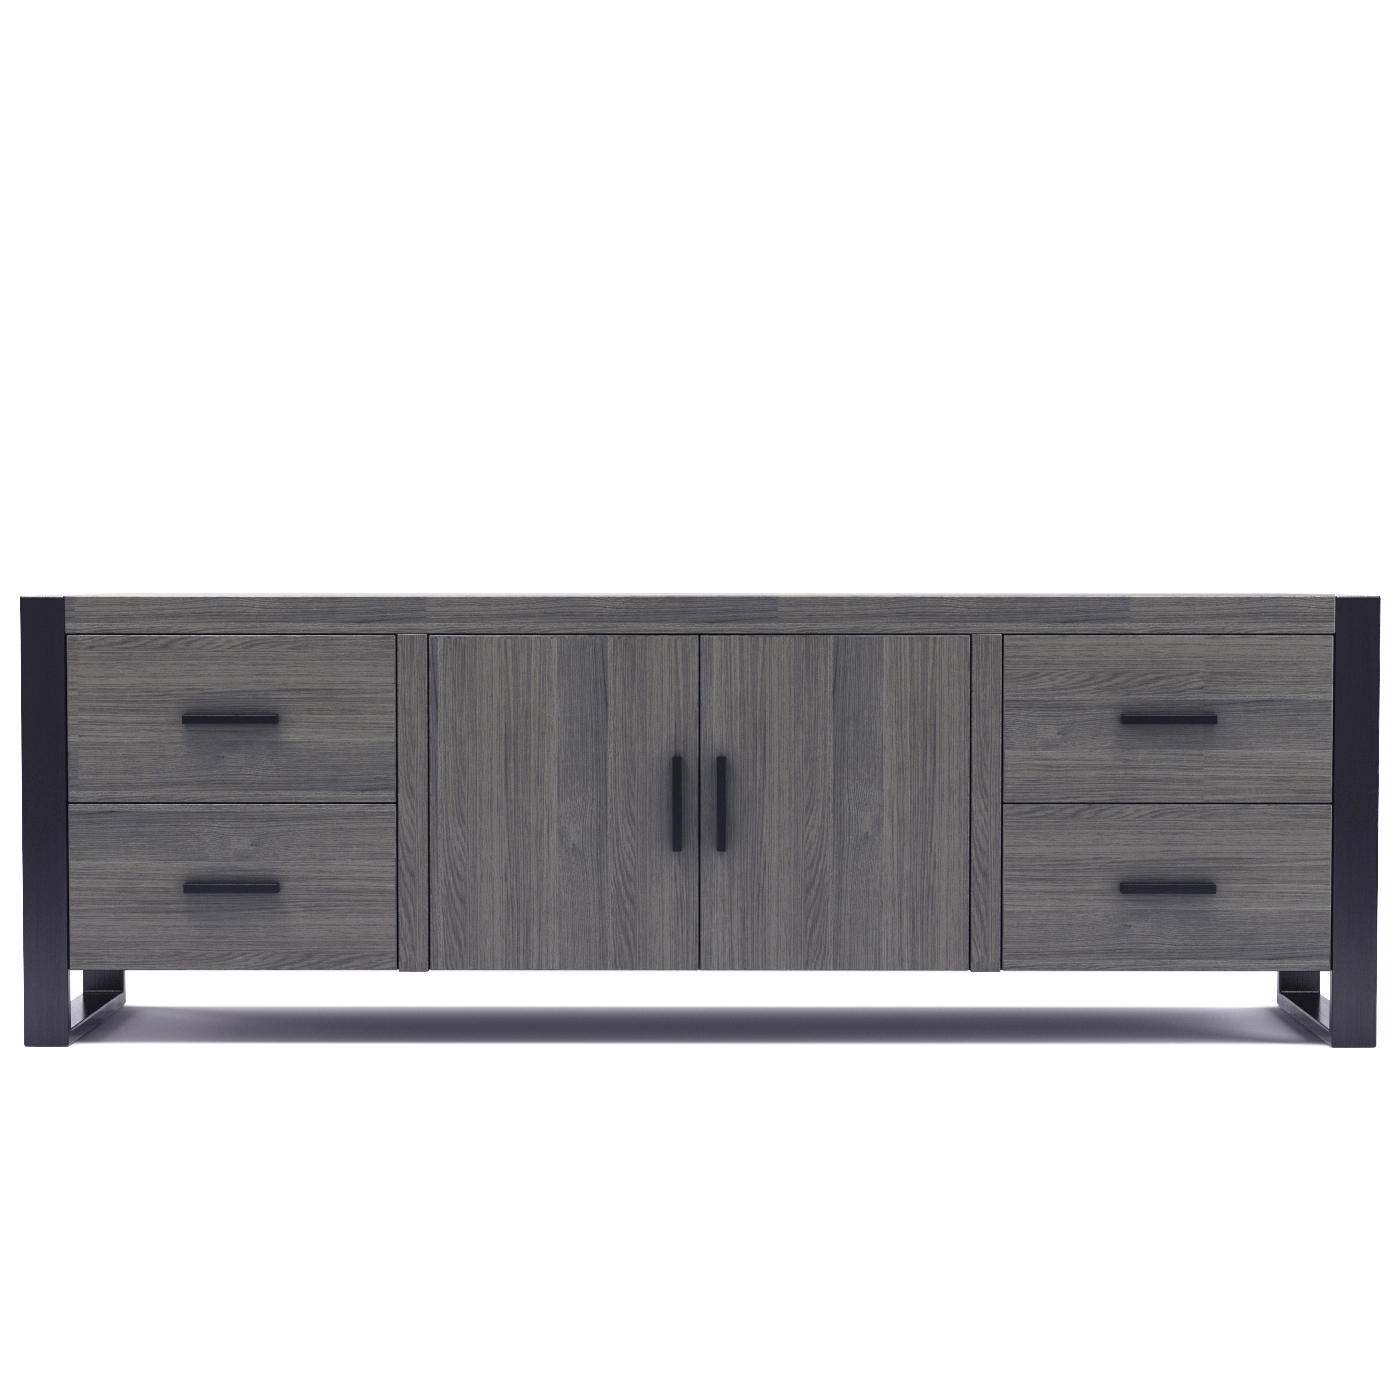 Furniture: Dexter 70 Inch Tv Stand In Ash Grey And Black with Annabelle Black 70 Inch Tv Stands (Image 20 of 30)